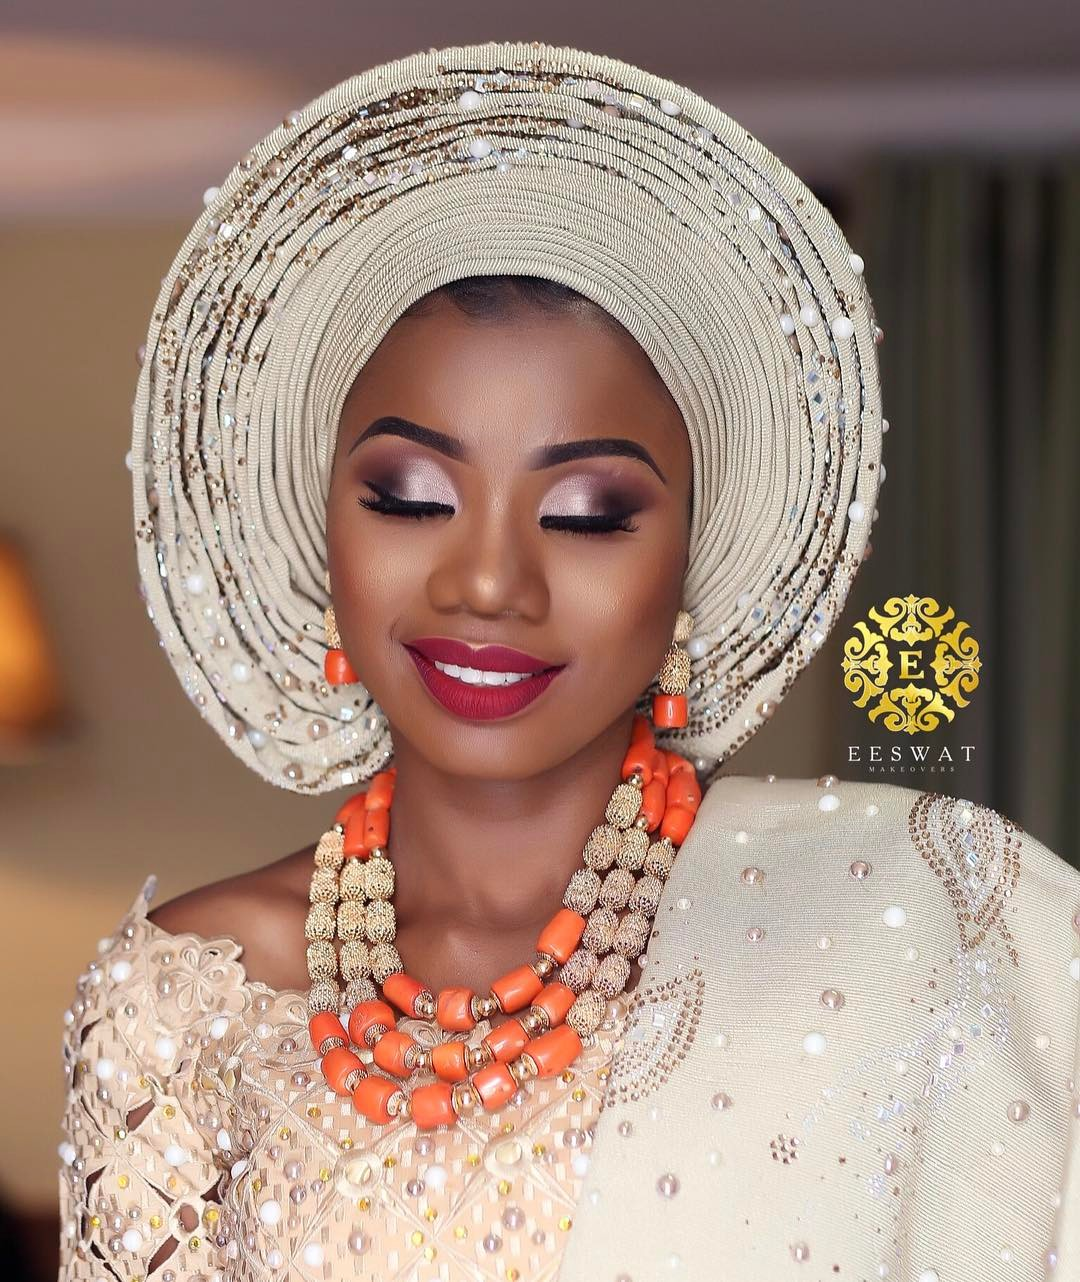 eeswatmakeovers - Stunning Bridal Makeup Inspiration With Eeswat Makeovers